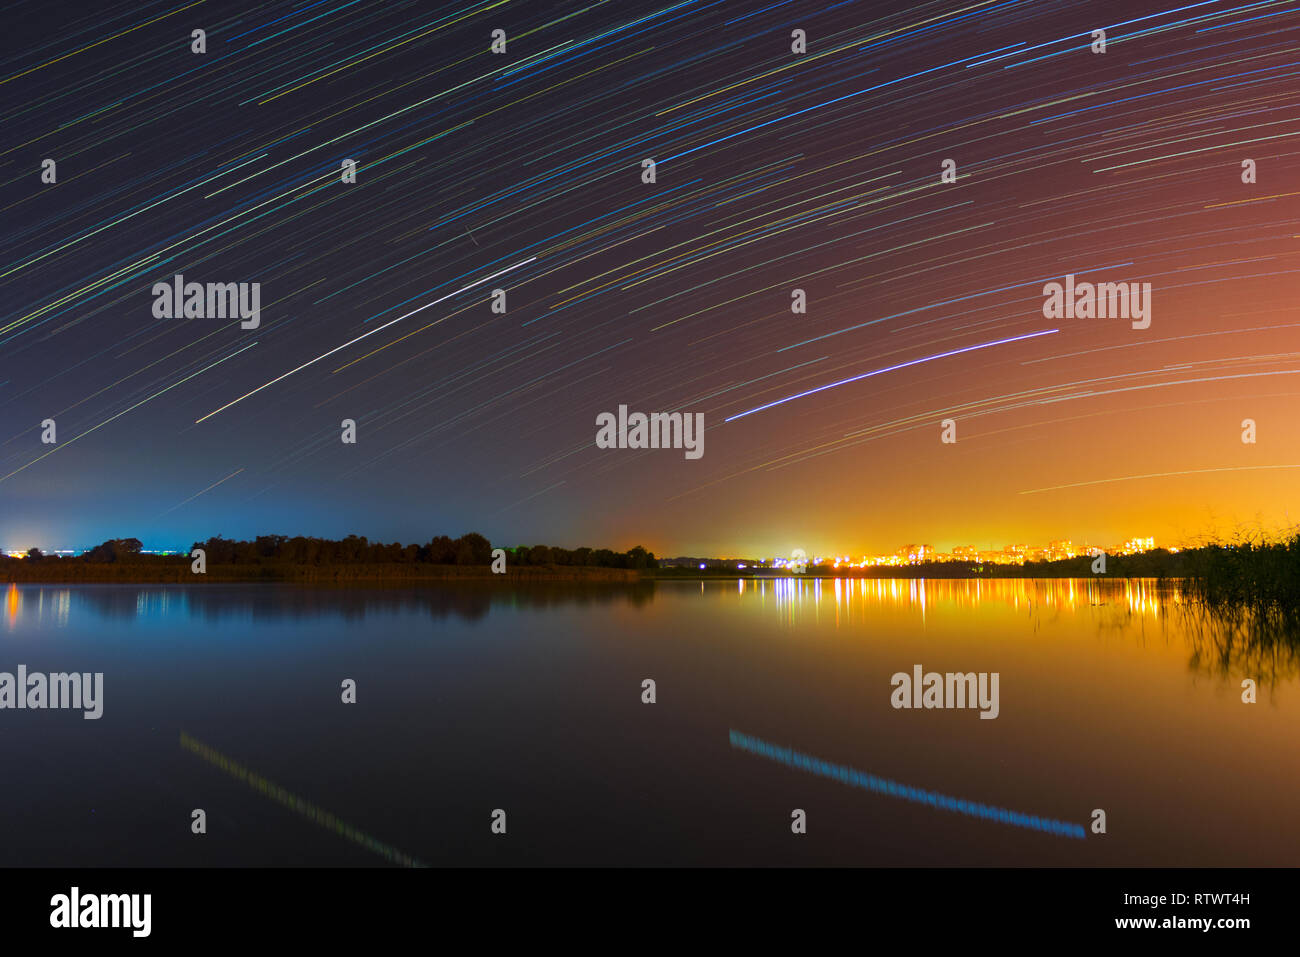 A star trails above the river. Long exposure photography. A city far away. - Stock Image